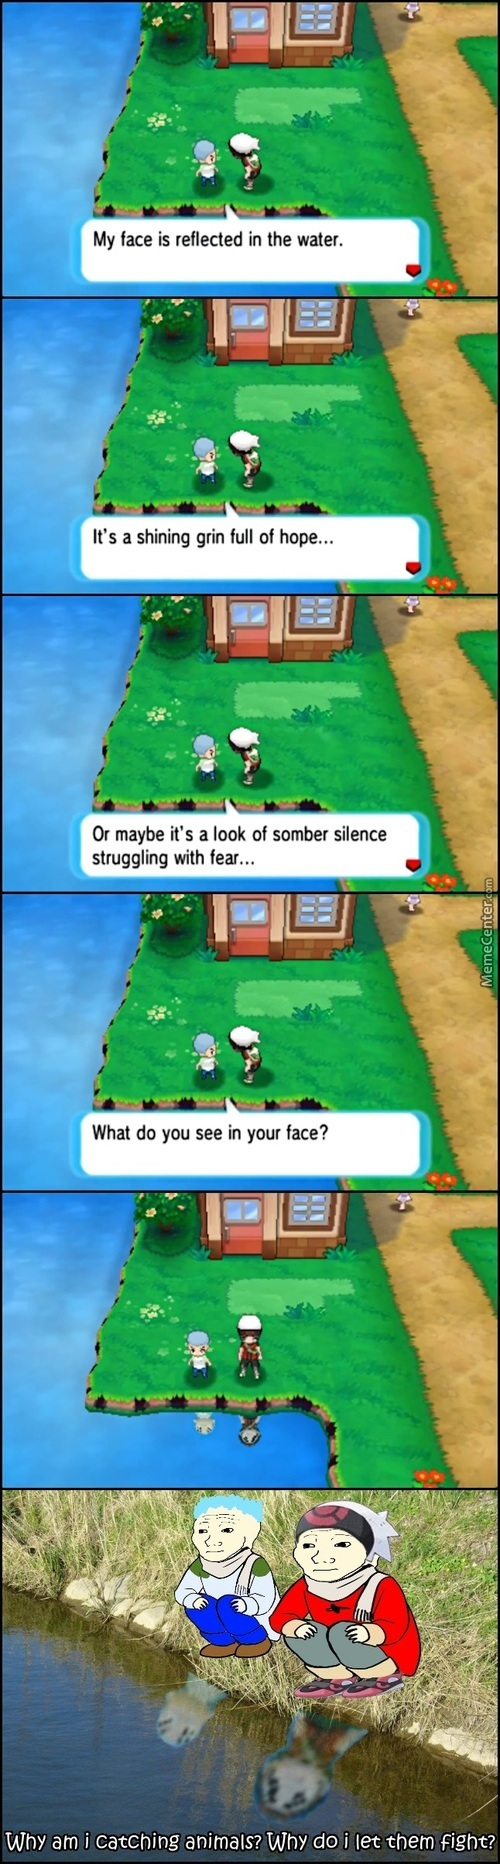 Childhood Questions - Pokemon